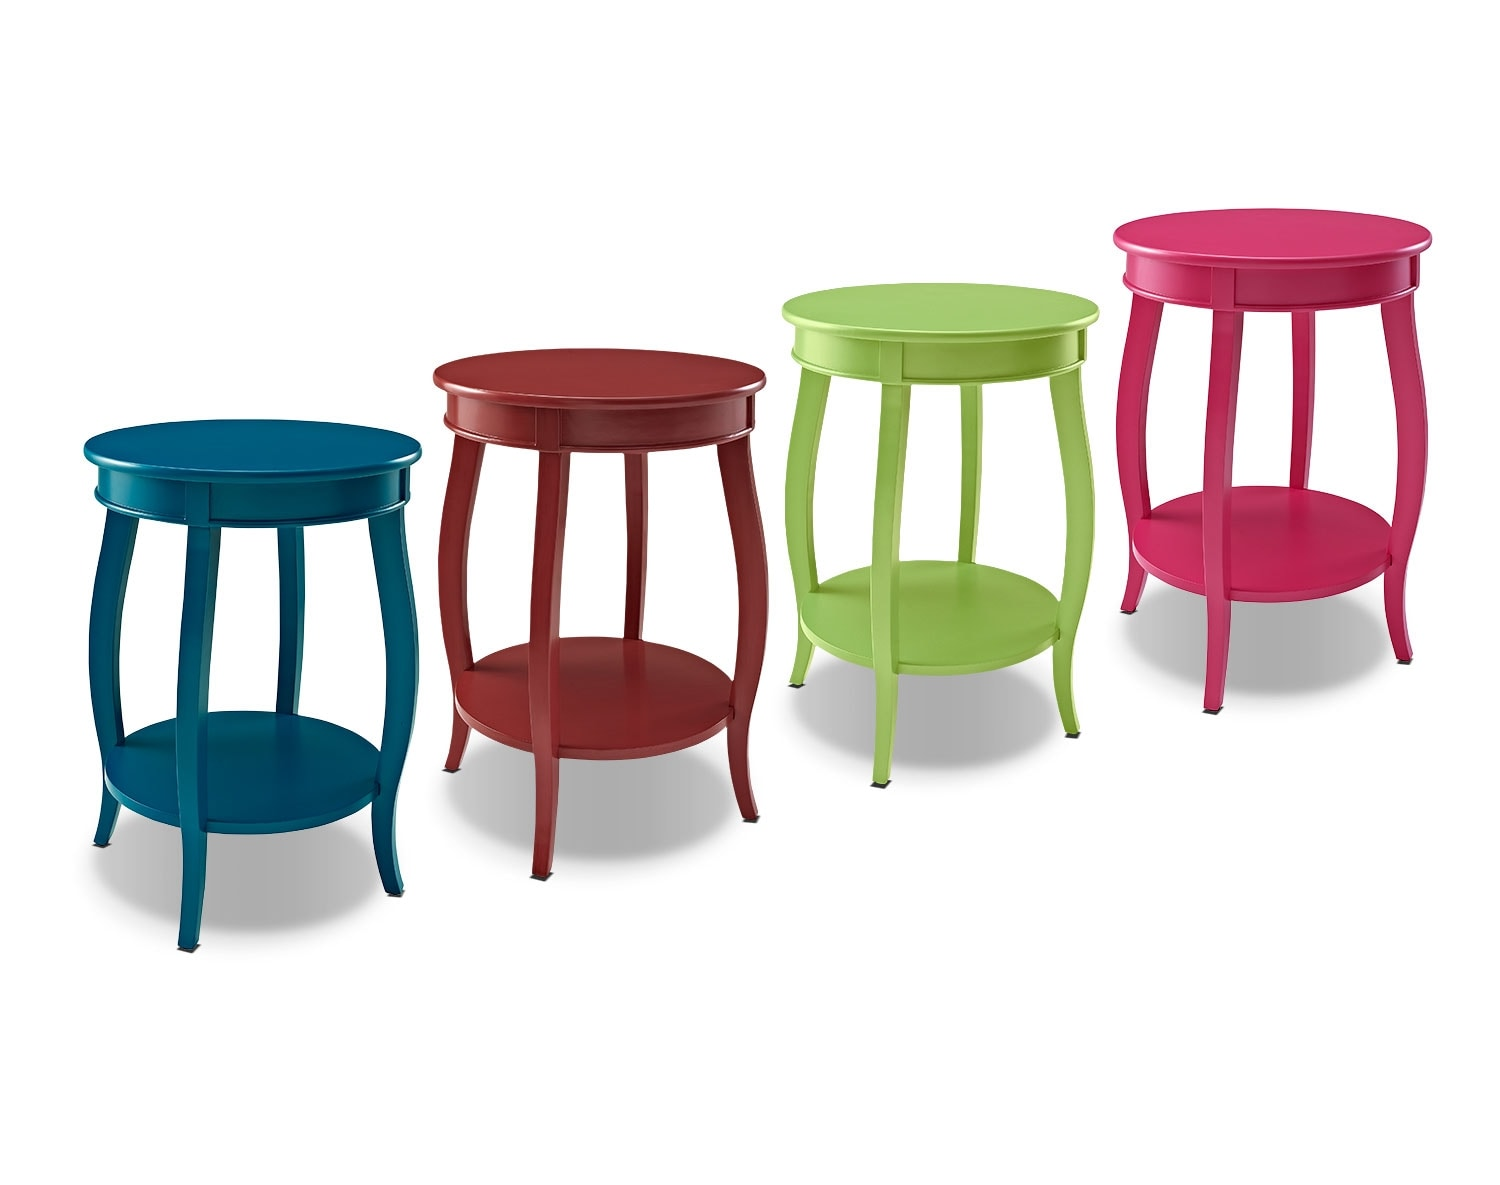 The Sydney Accent Table Collection